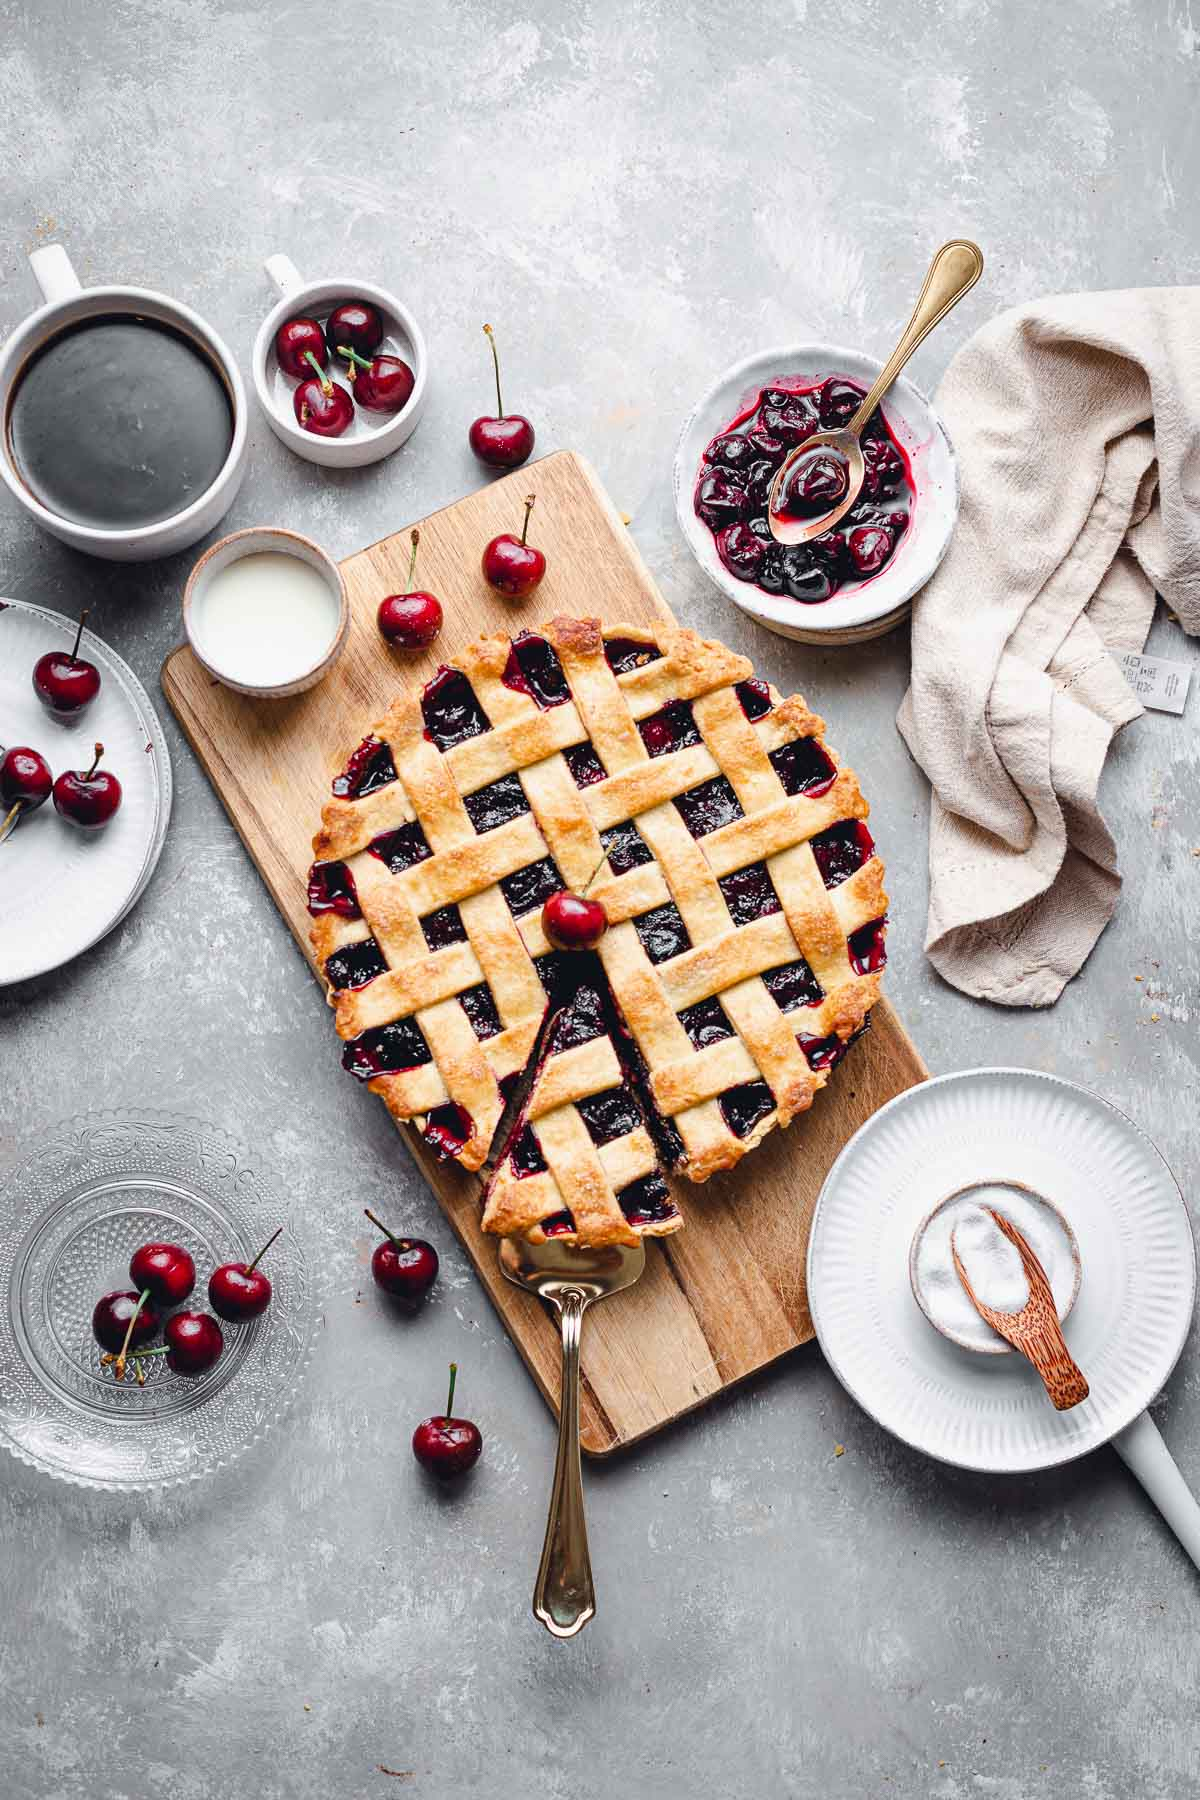 An overhead view of cherry pie with one slice being taken out and various ingredients scattered around.